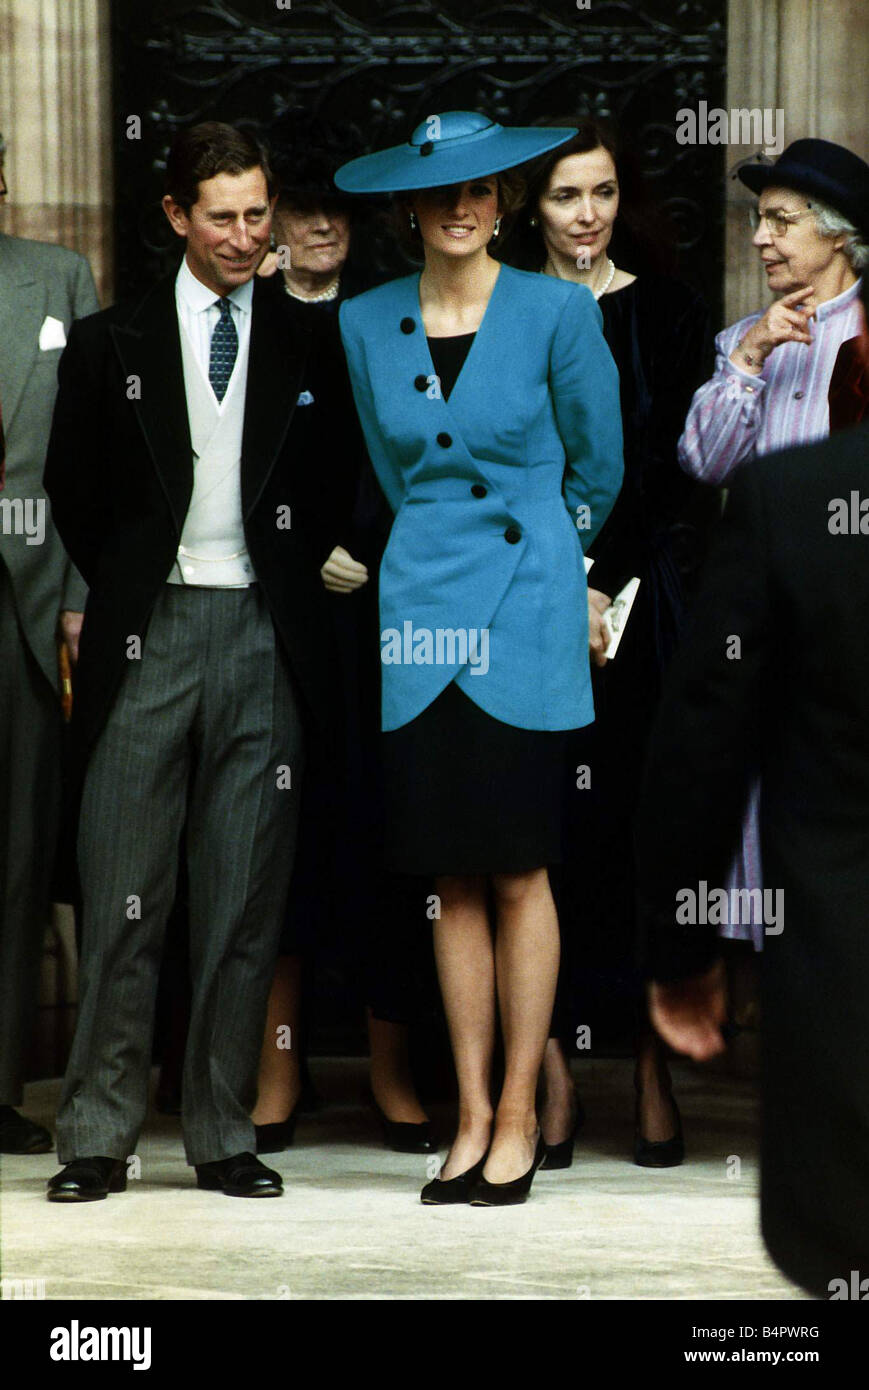 Prince Charles with Princess Diana dress in blue and black at the ...